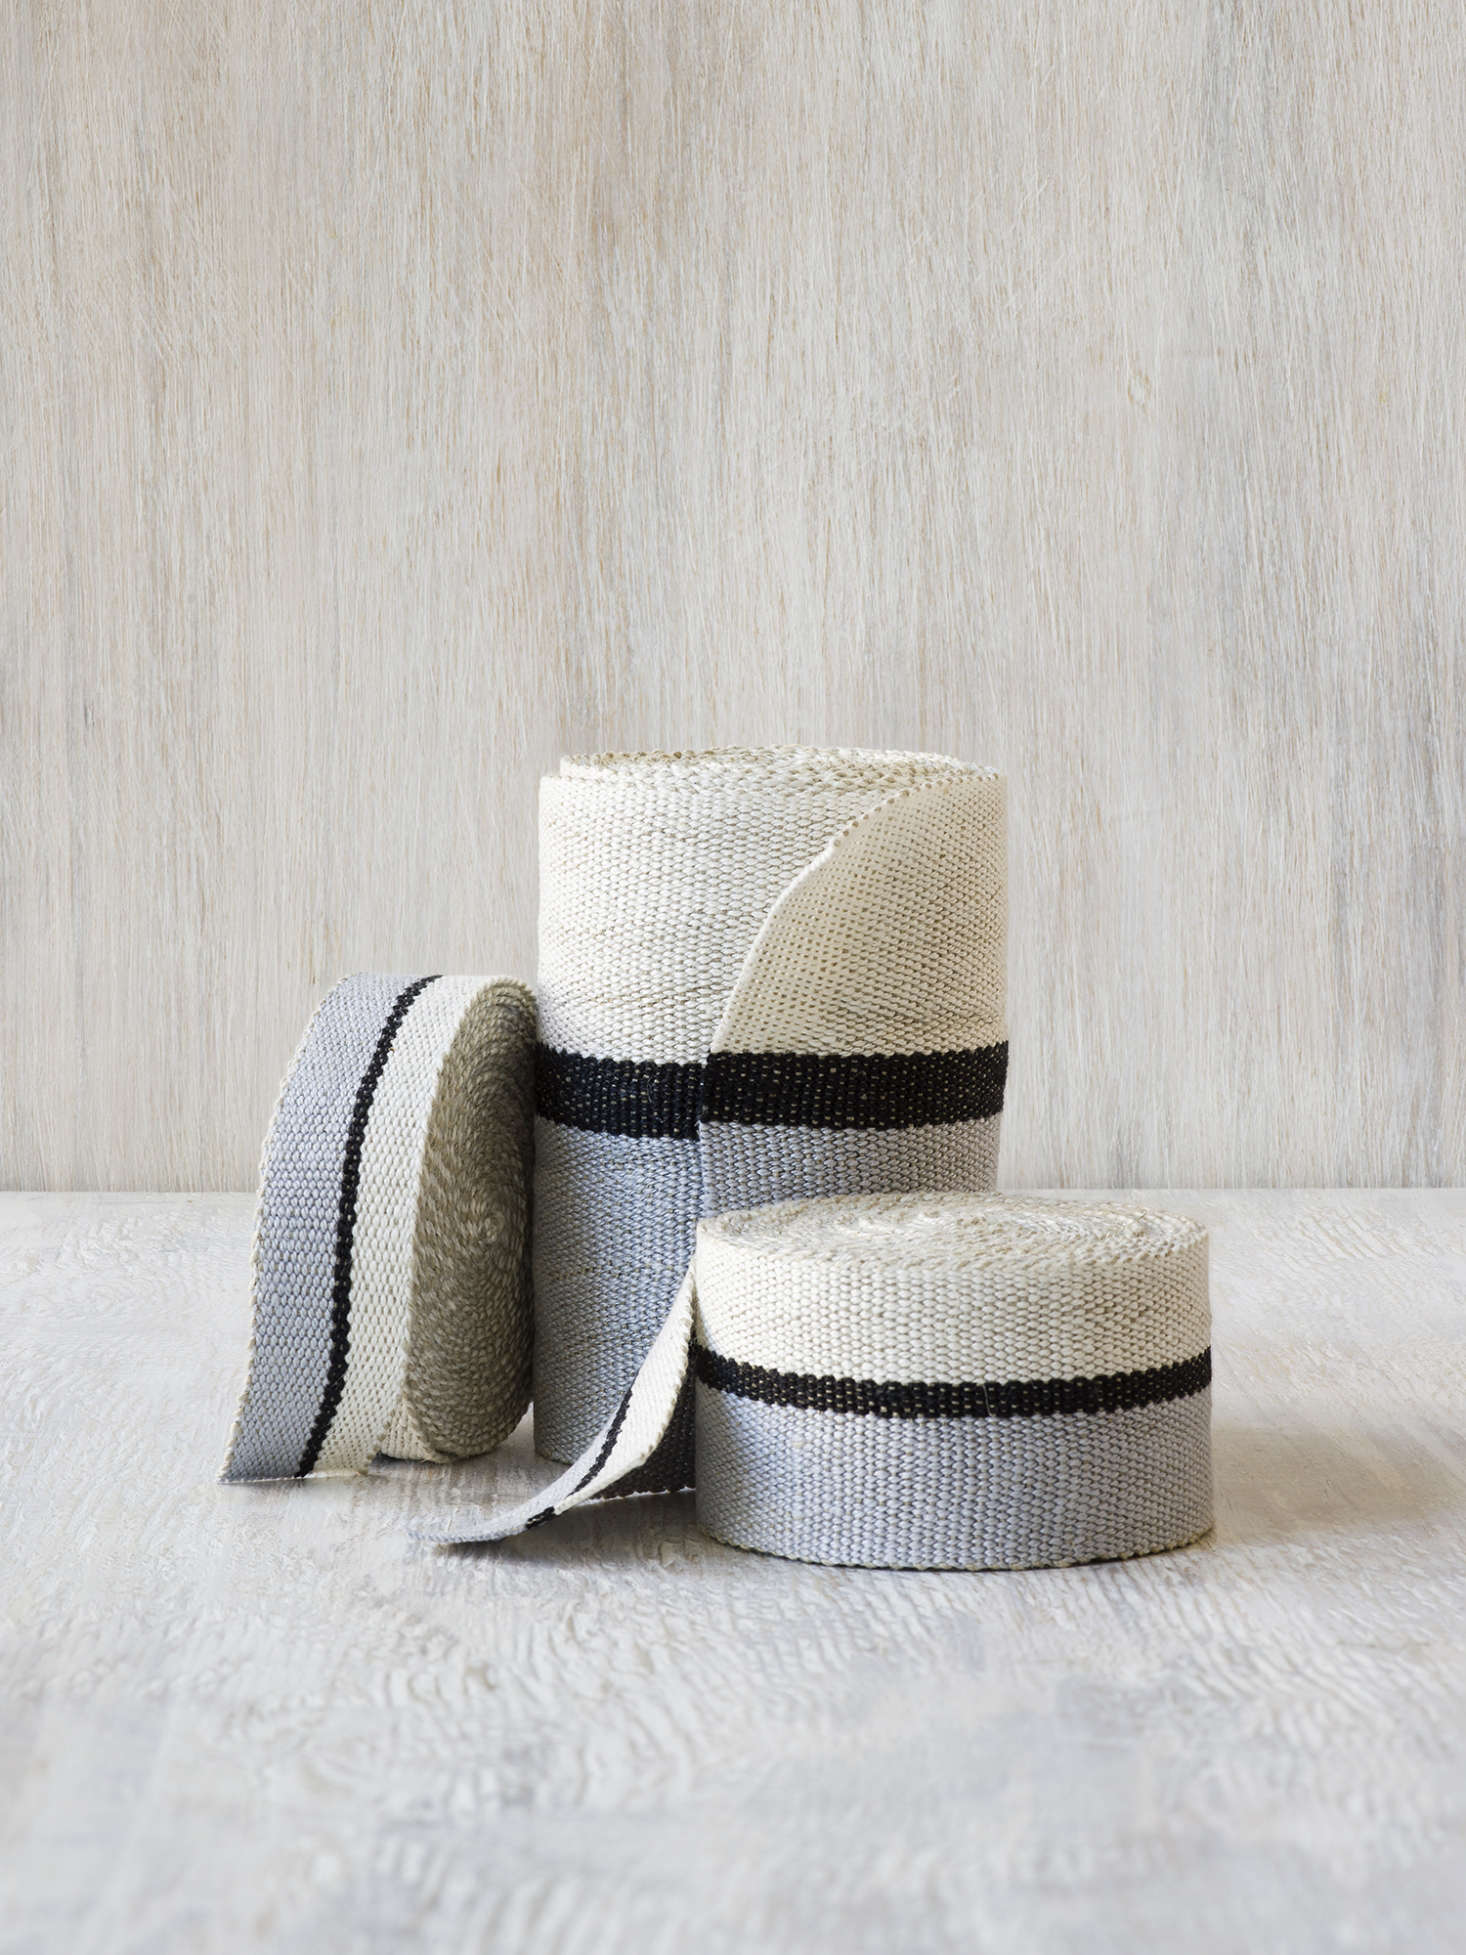 Artisanal Dish Towels Pillows And Linen Tape Woven By Stephanie Seal Brown